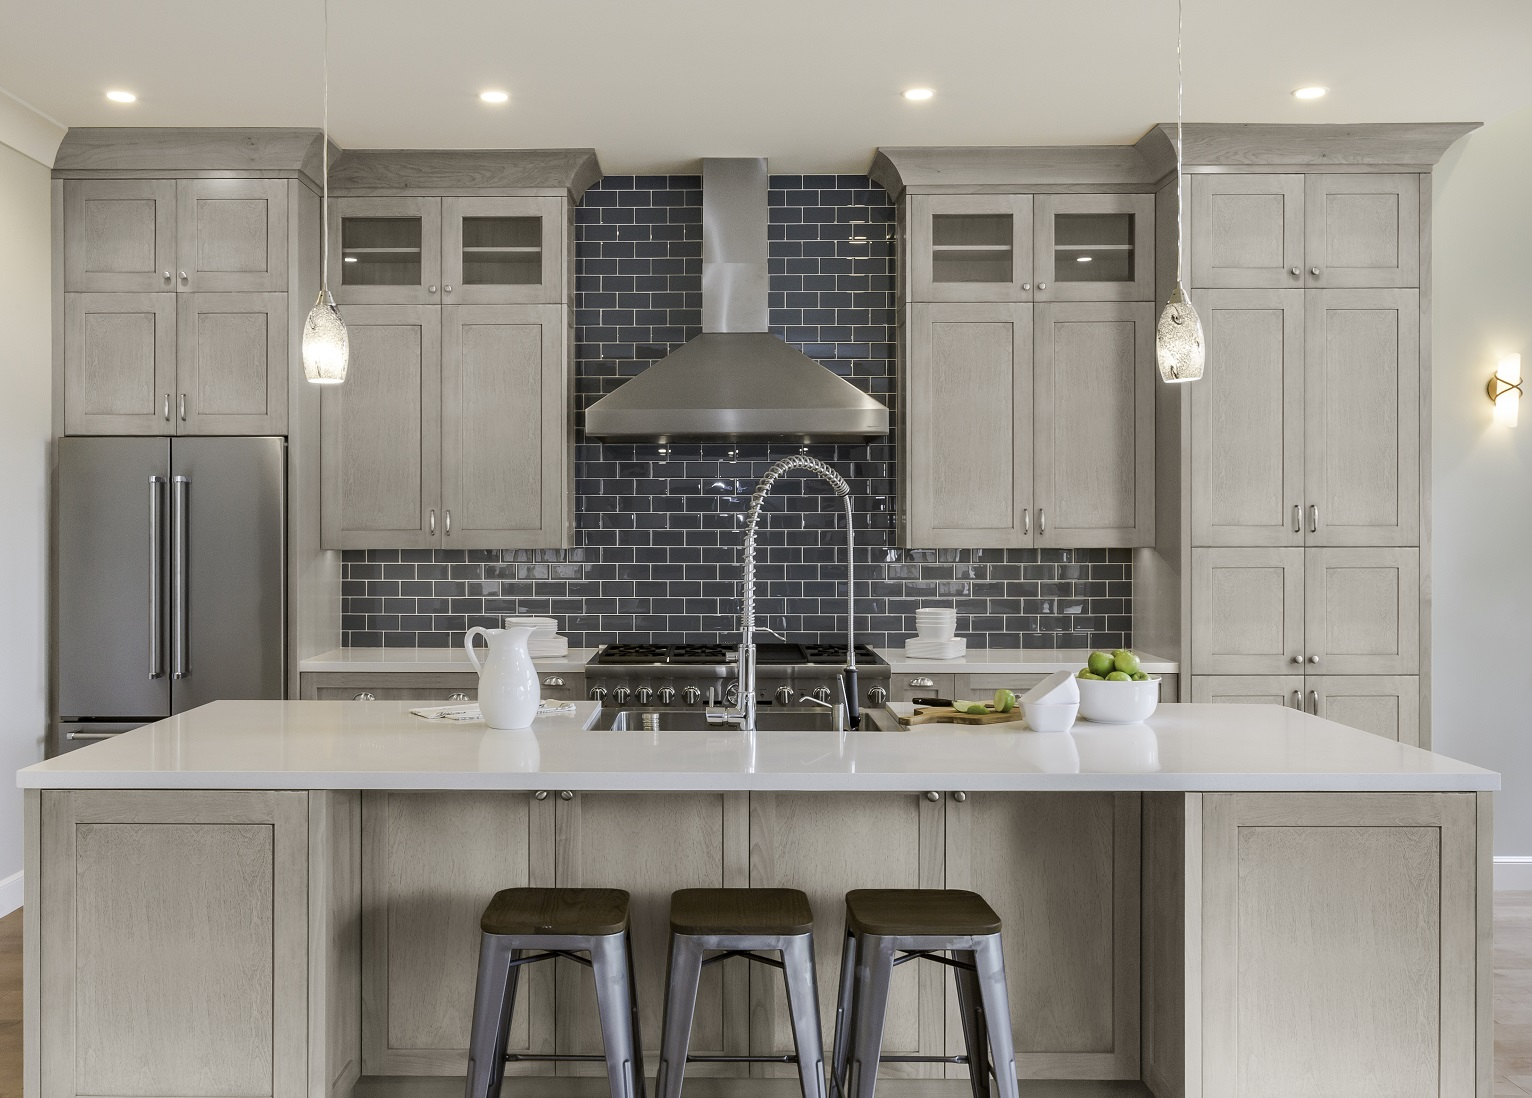 Delicieux Kitchen Cabinets. Midtown Light Grey Shaker.  Midtown%2520Light%2520Grey%2520Shaker